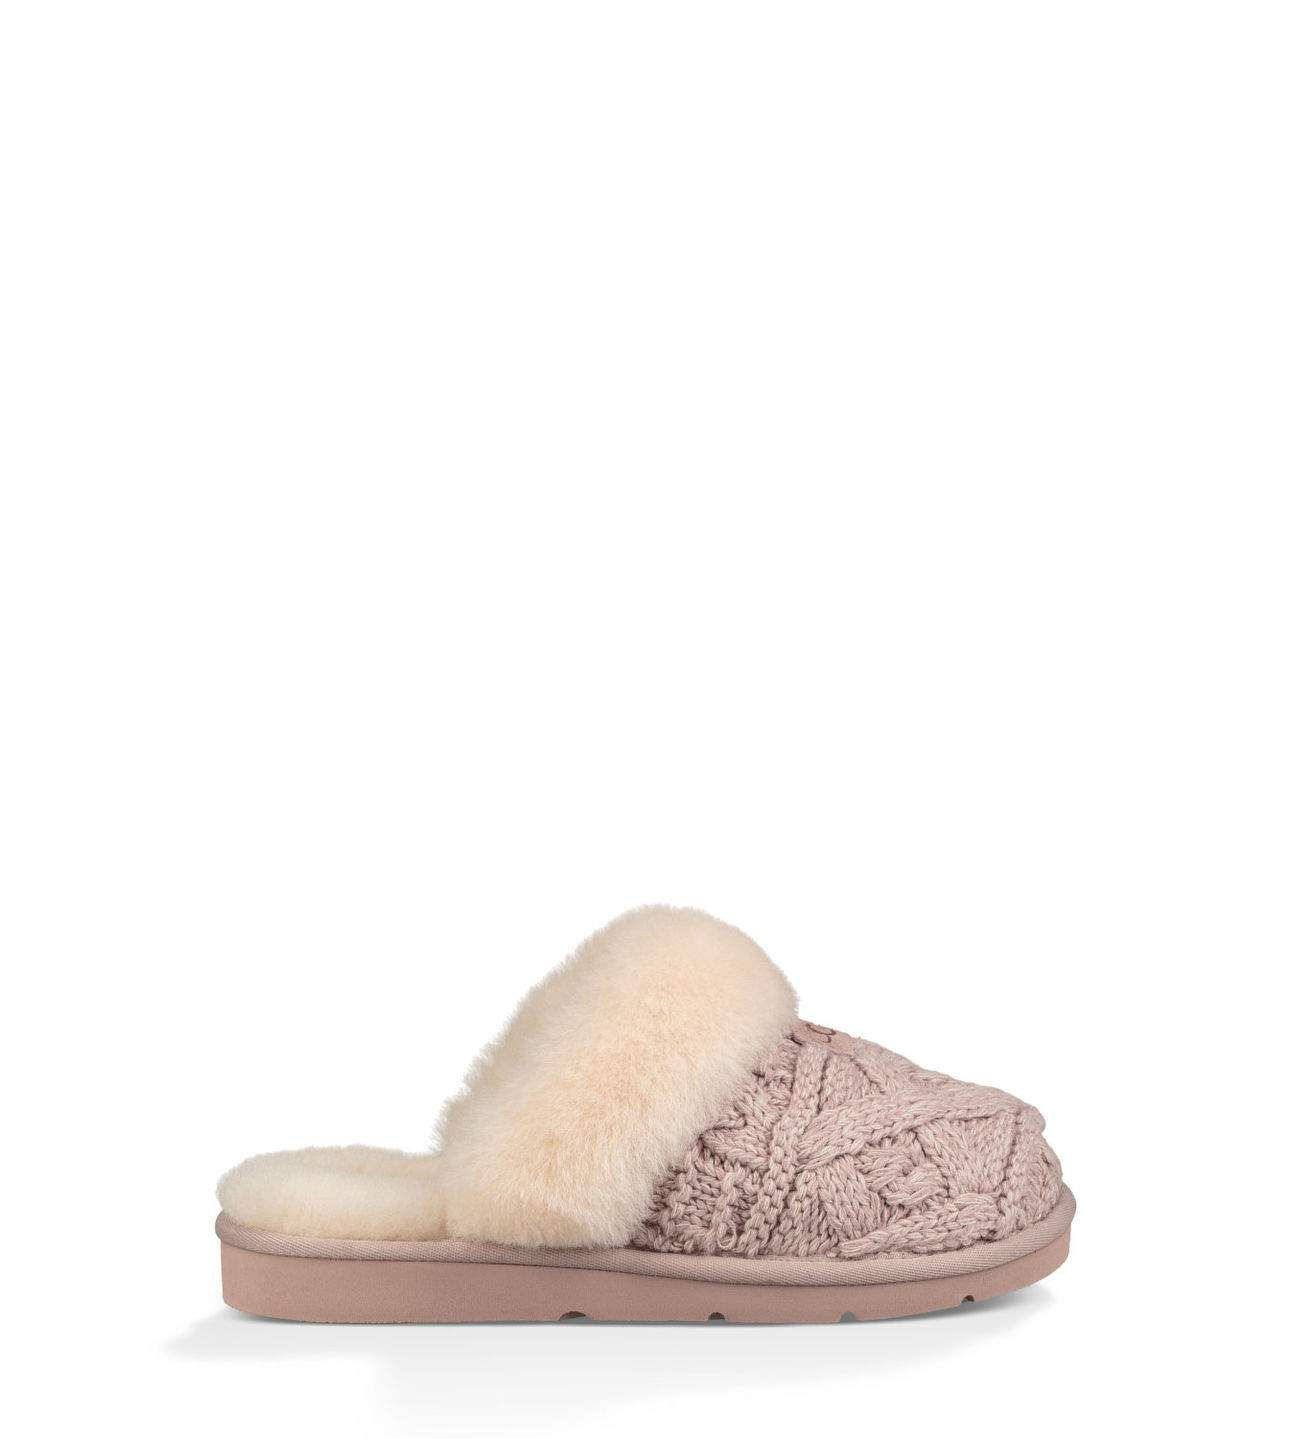 957c514d1fc Shop the Cozy Cable Slipper, part of the Official UGG® Women's ...